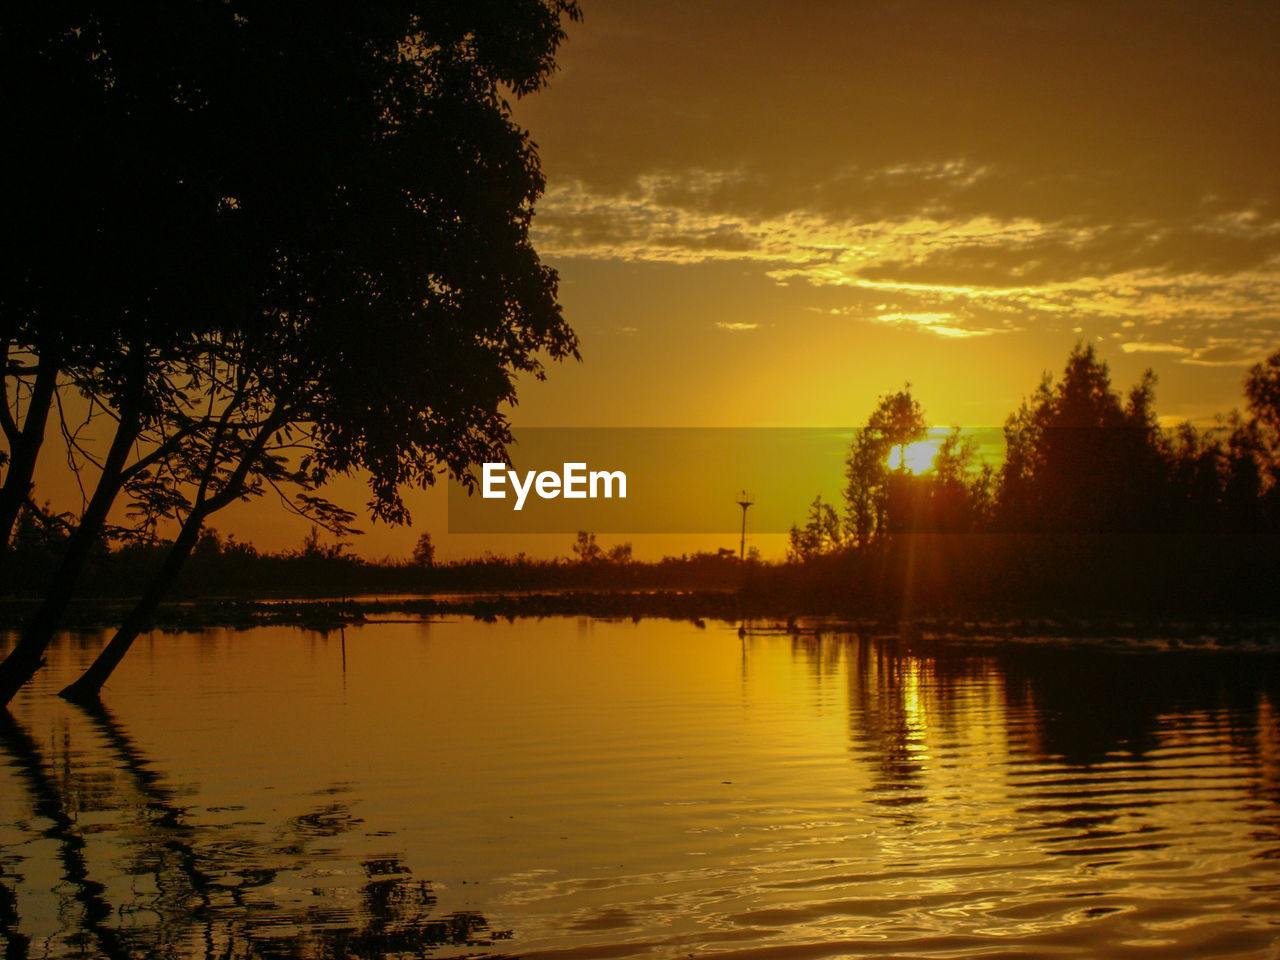 sunset, water, sky, reflection, tree, scenics - nature, tranquility, beauty in nature, lake, plant, orange color, tranquil scene, nature, cloud - sky, silhouette, no people, waterfront, idyllic, outdoors